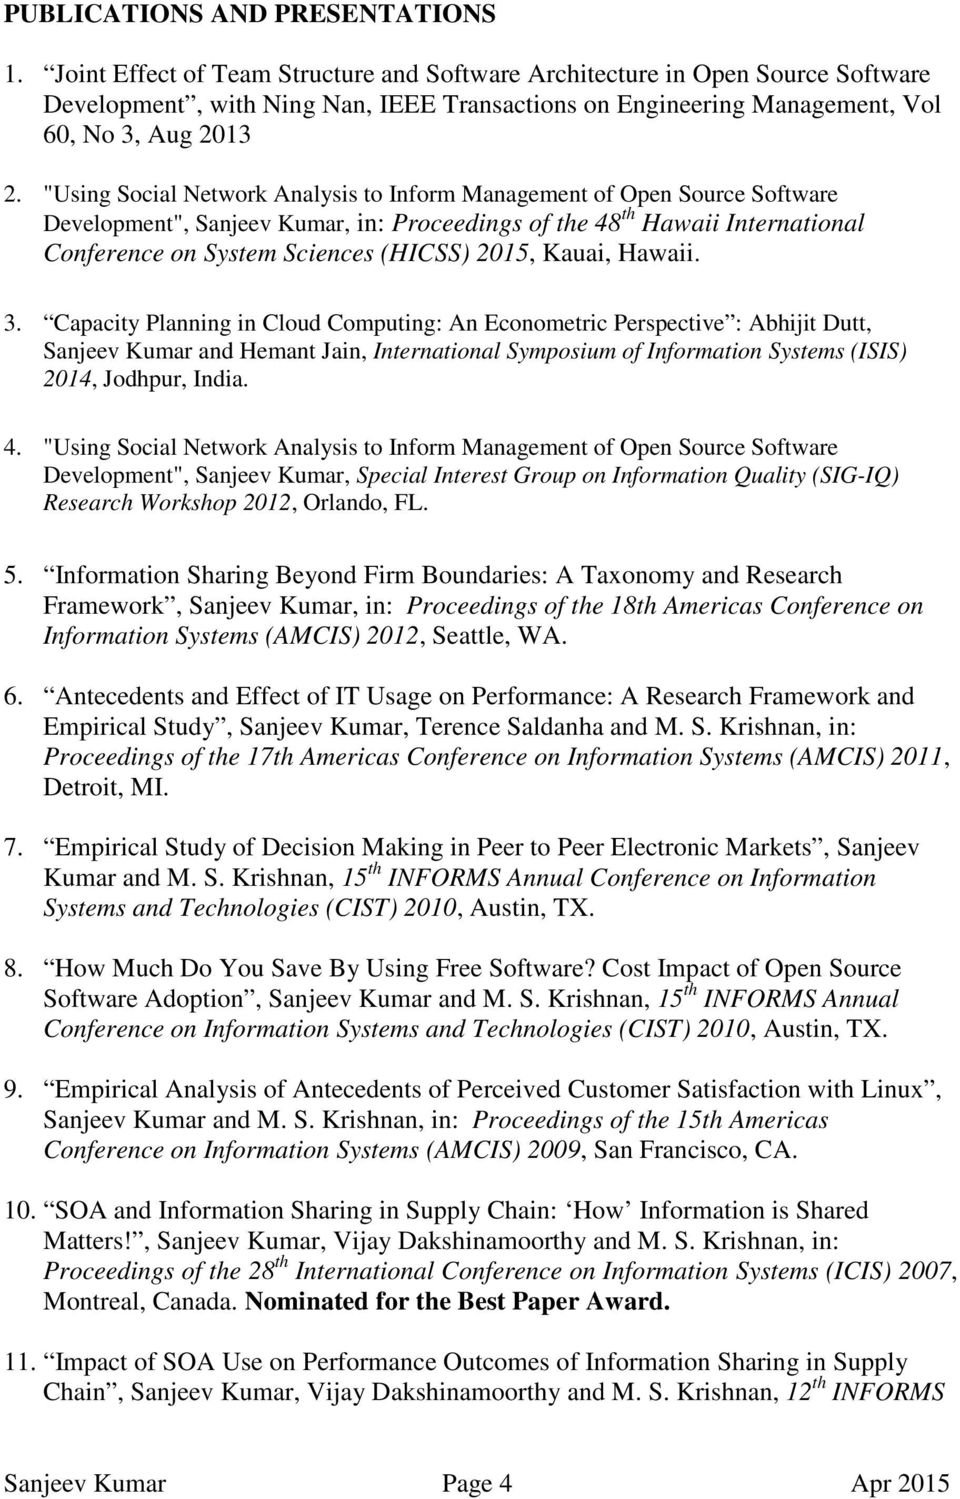 """Using Social Network Analysis to Inform Management of Open Source Software Development"", Sanjeev Kumar, in: Proceedings of the 48 th Hawaii International Conference on System Sciences (HICSS) 2015,"